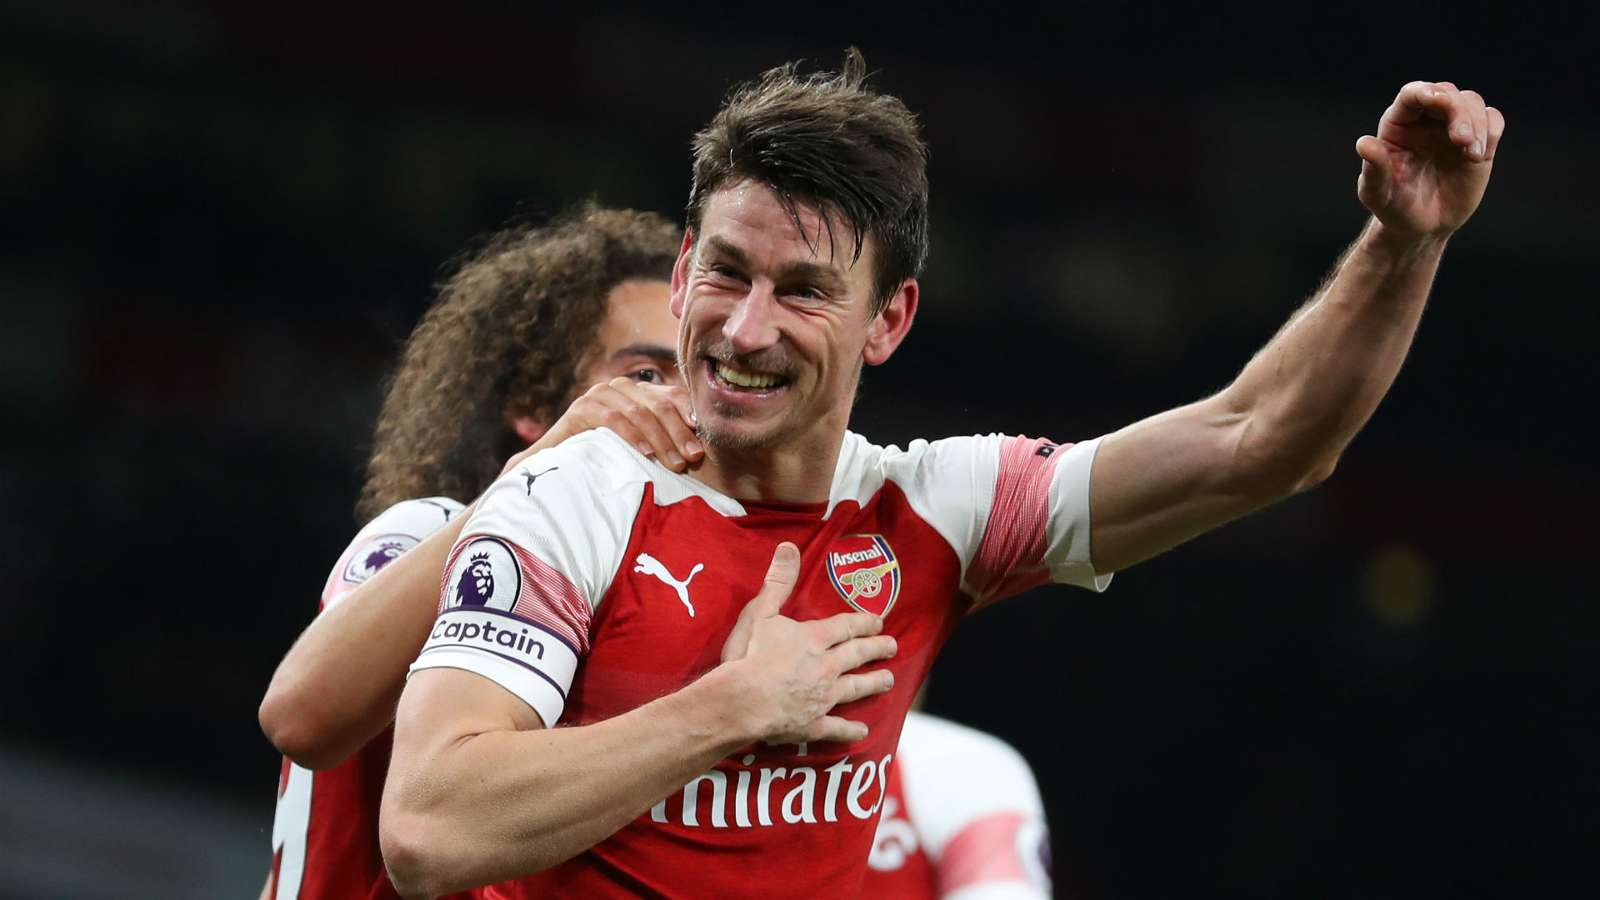 Photo of Arsenal 2-0 Chelsea: Match Report & Highlights